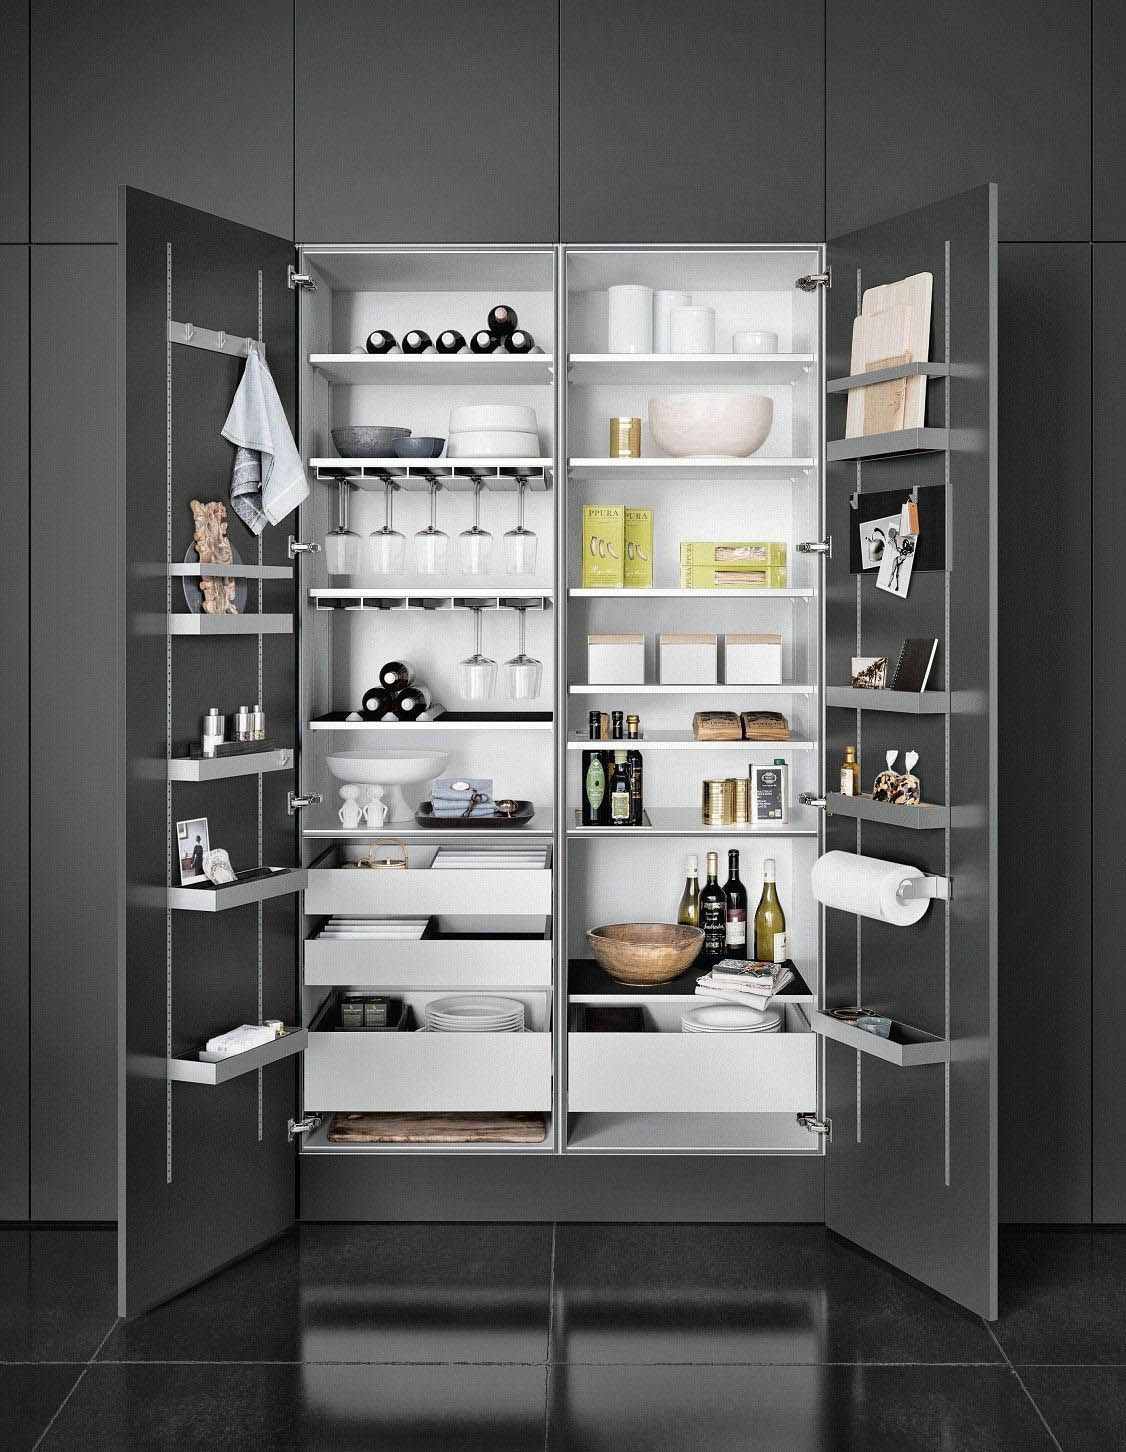 THE LEADING 16 COOKING AREA CUPBOARD IDEAS FOR 2019 #kitchenpantrycabinets Stunning Ideas for a kitchen pantry cabinet width exclusive on homesable home decor #kitchenpantrycabinets